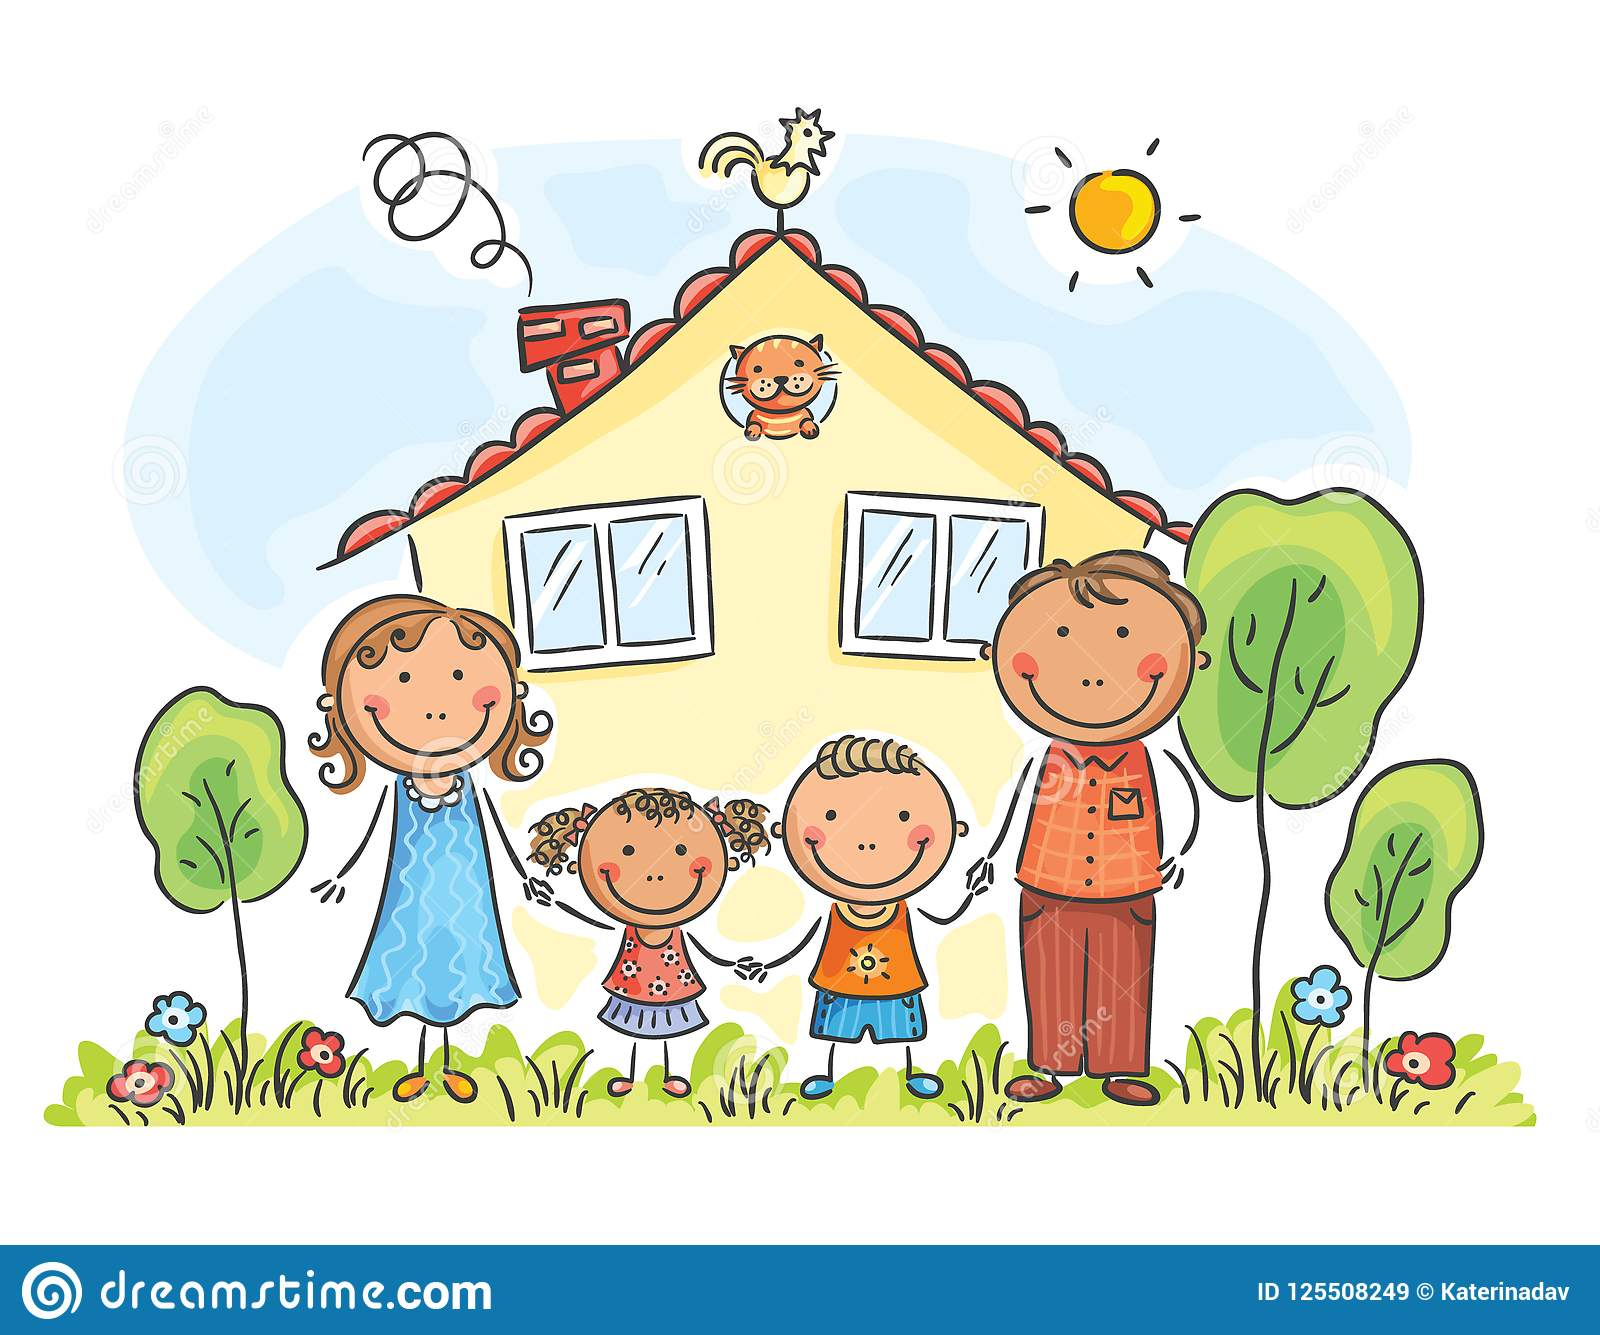 Family with two children near their house, cartoon graphics